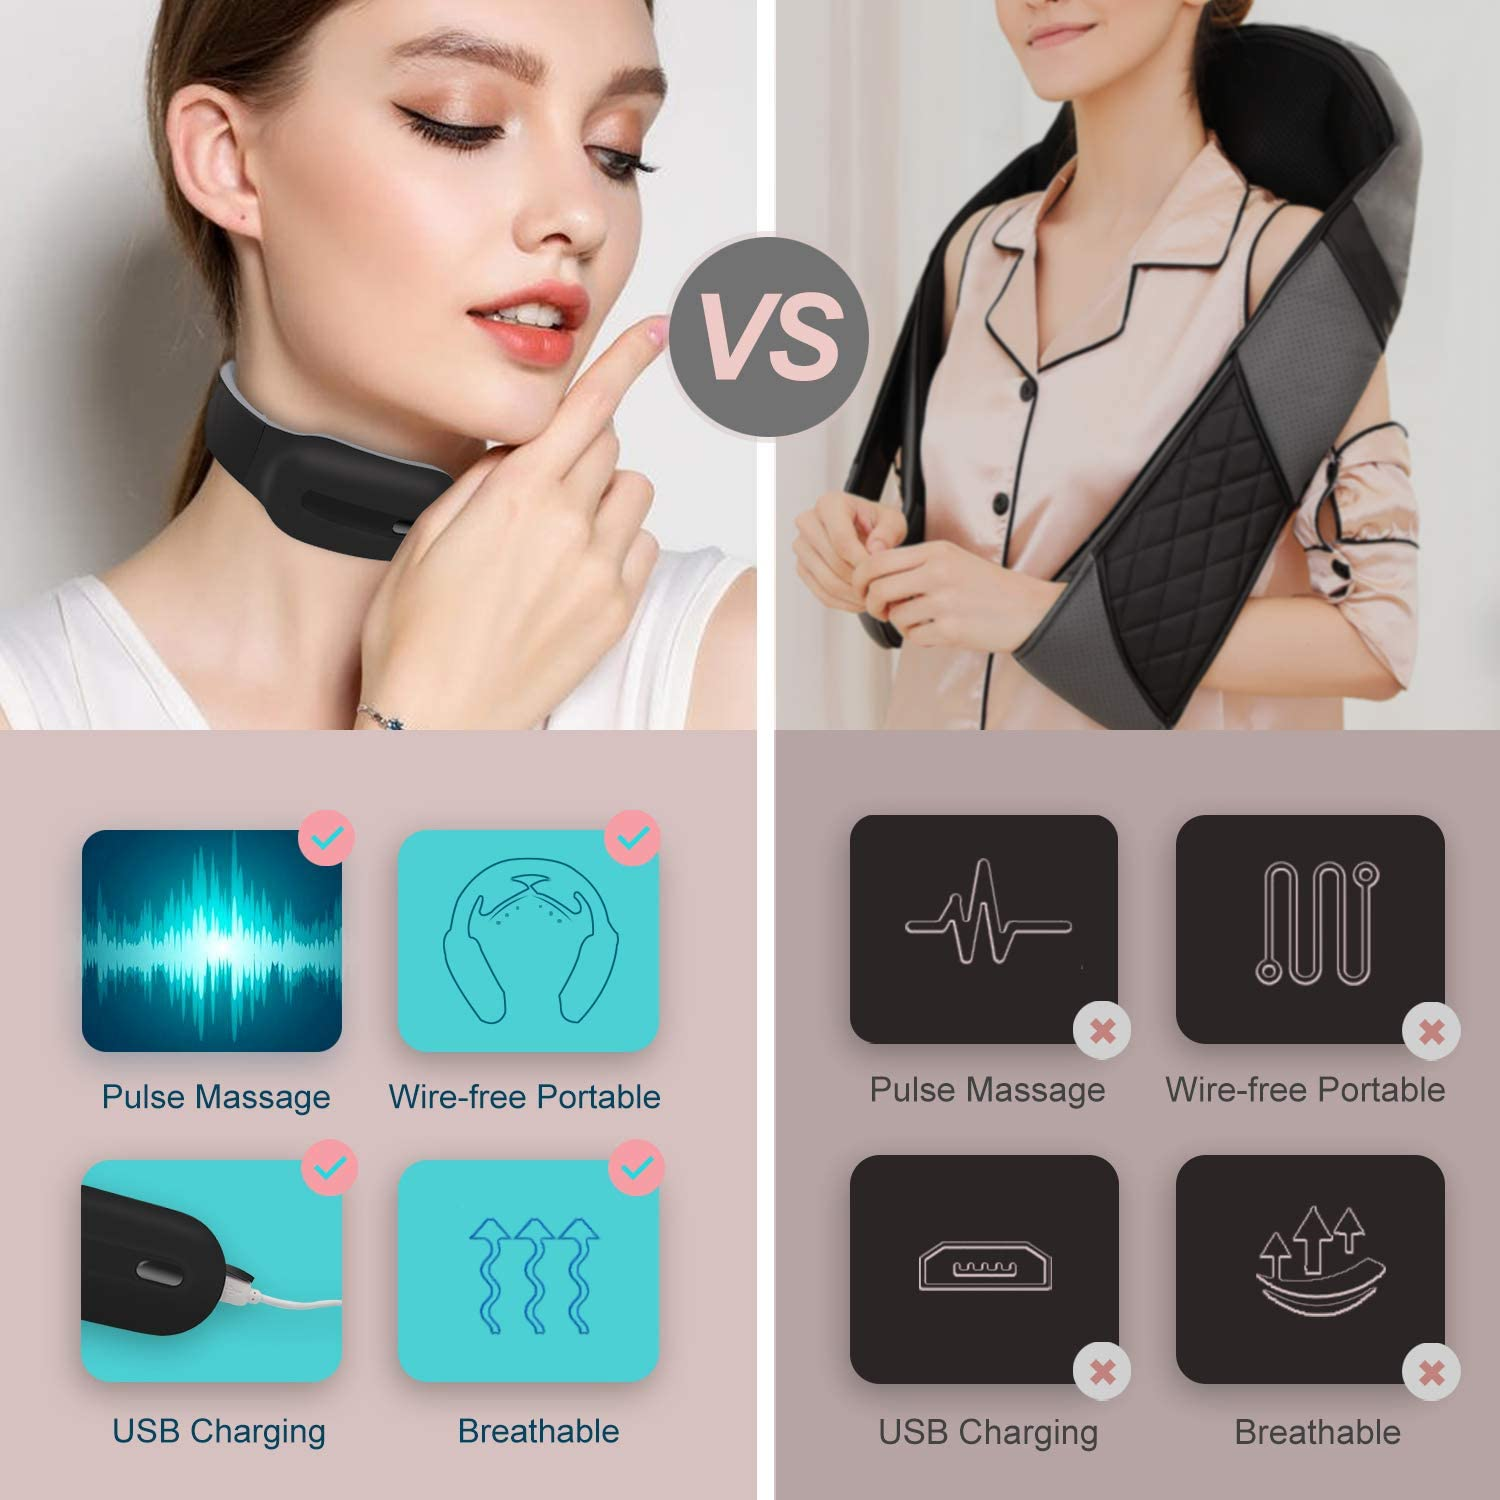 Neck Massager, Intelligent Neck Massage with Heat, Portable Cordless Massage Equipment, 3 Modes 15 Speeds Electric Pulse Massage at Home Office Travel, Gifts for Women Men Dad Mom Festive Present: Health & Personal Care